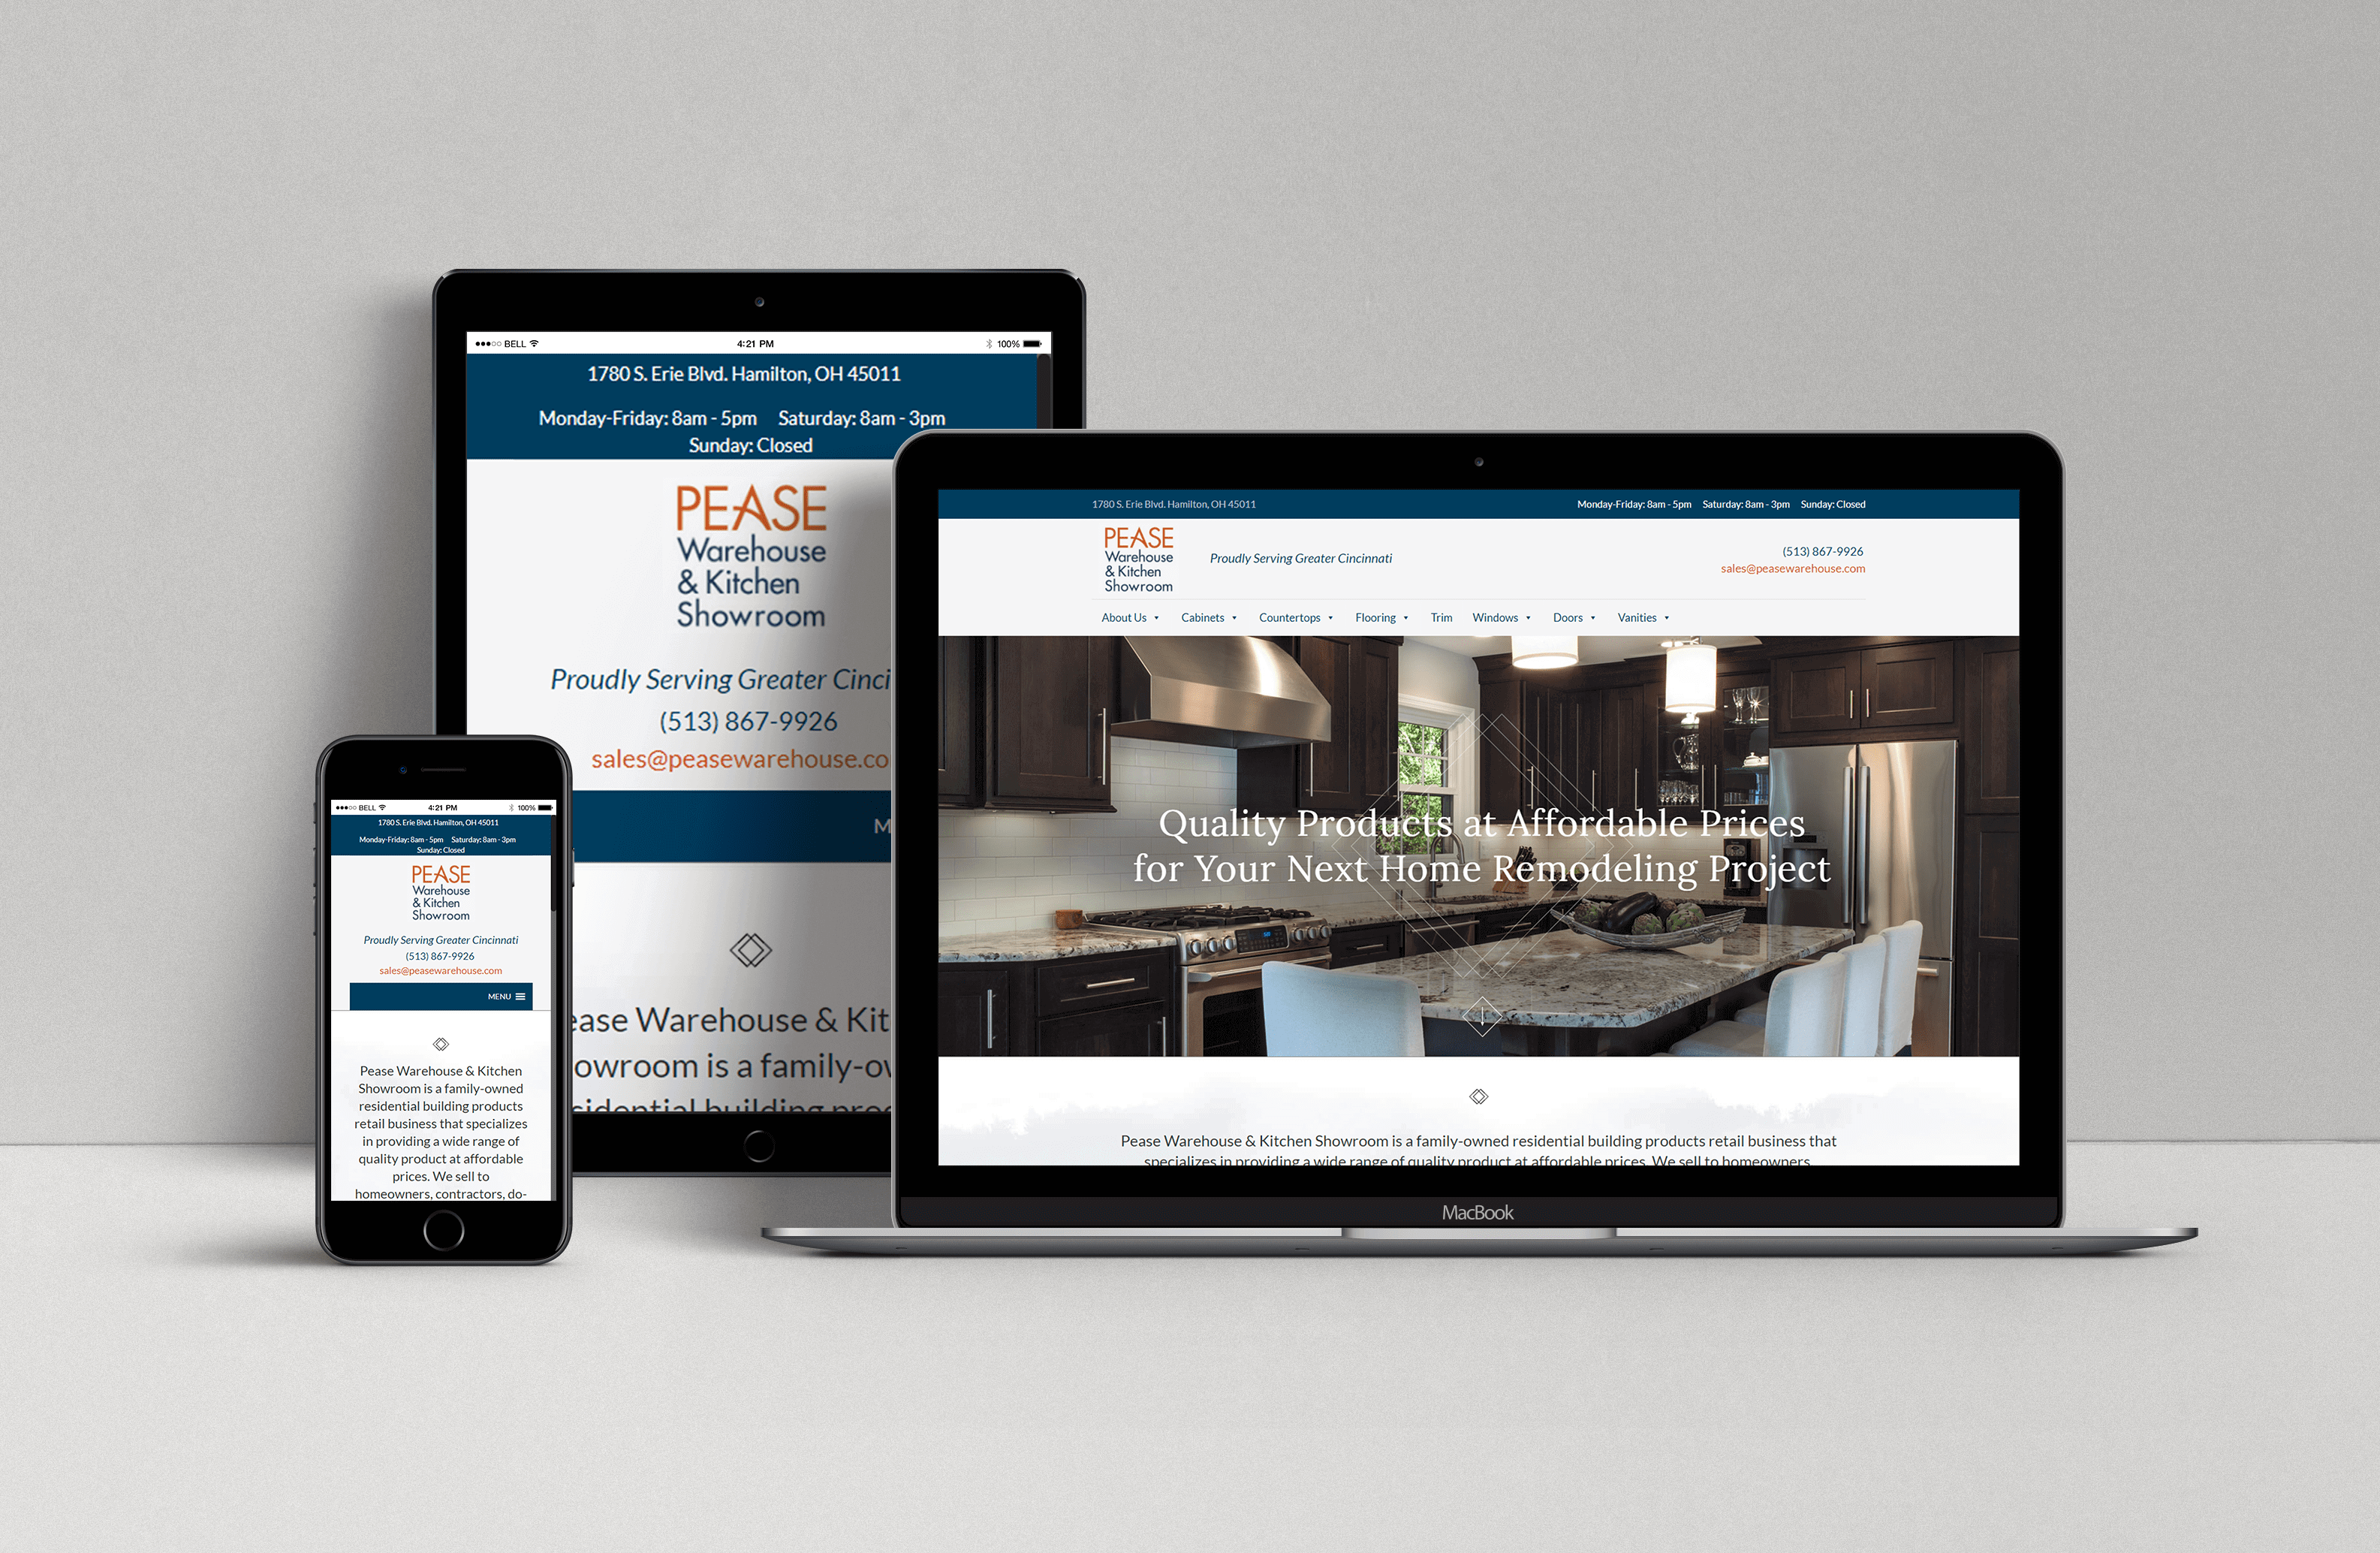 Pease Warehouse New Website Design on Mobile Desktop and Tablet